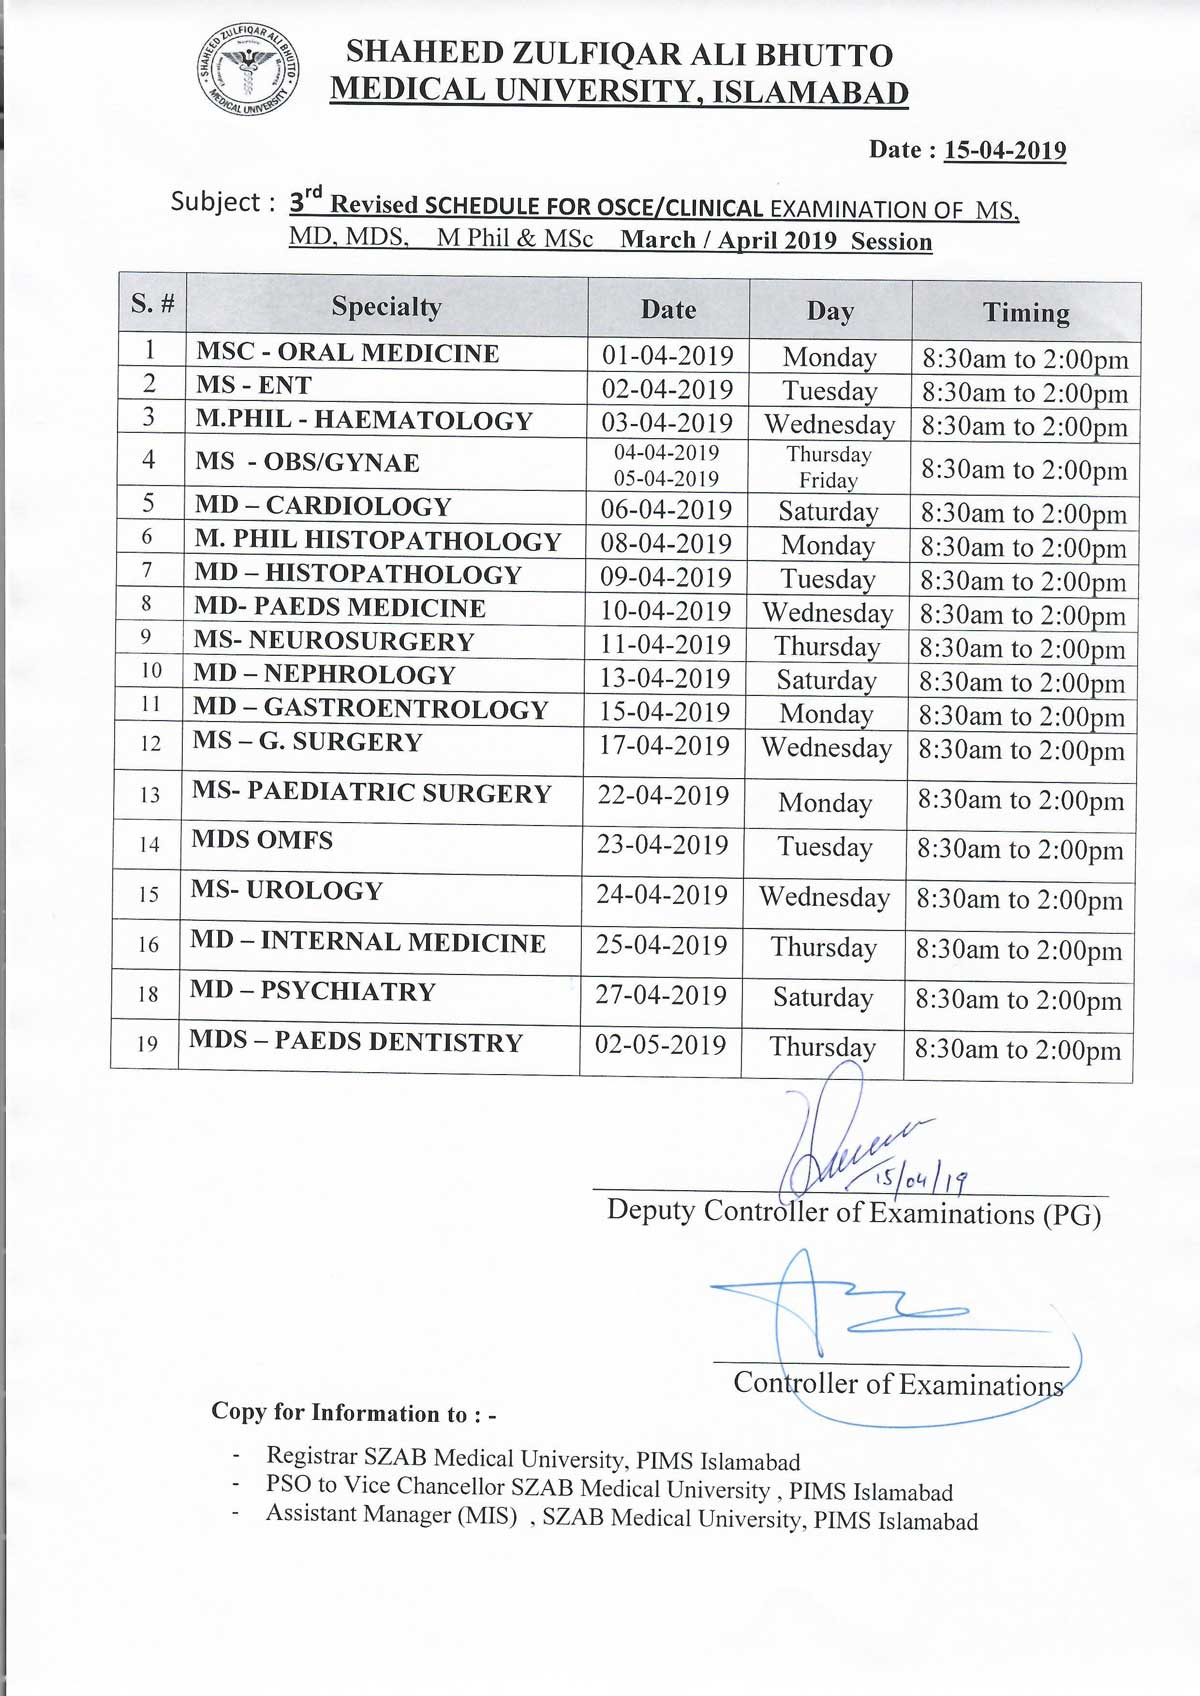 3rd Revised Schedule of Clinical Examinations of MS/MD/MDS/M.Phil/MSc